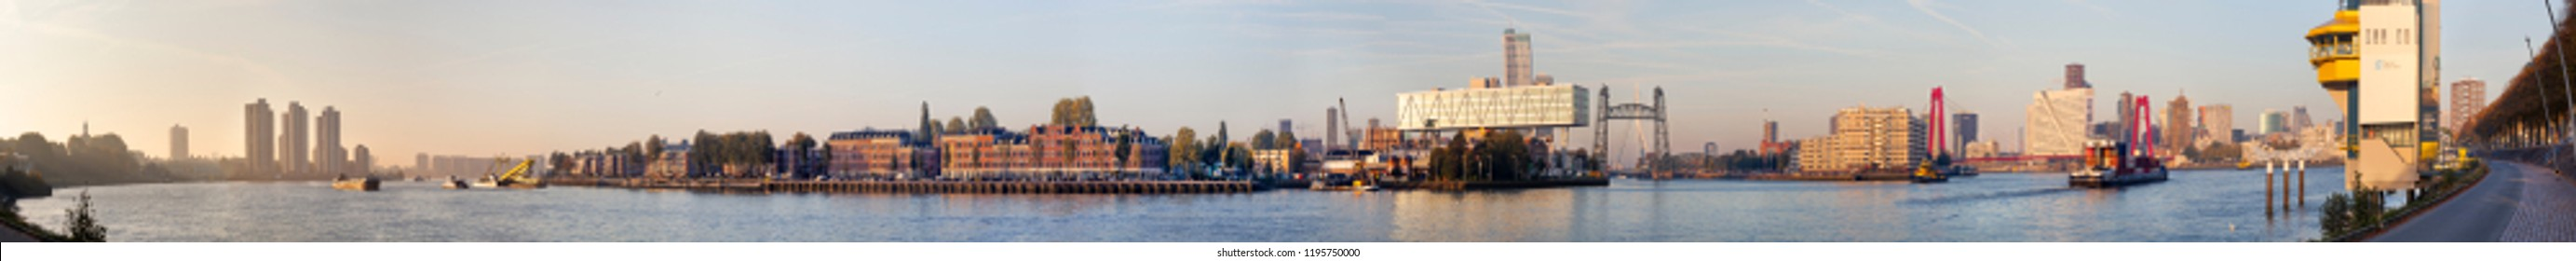 Rotterdam, Netherlands – October 5, 2018: Panorama of Rotterdam with the center of the city on the right side and the south district on the left side of the river Meuse